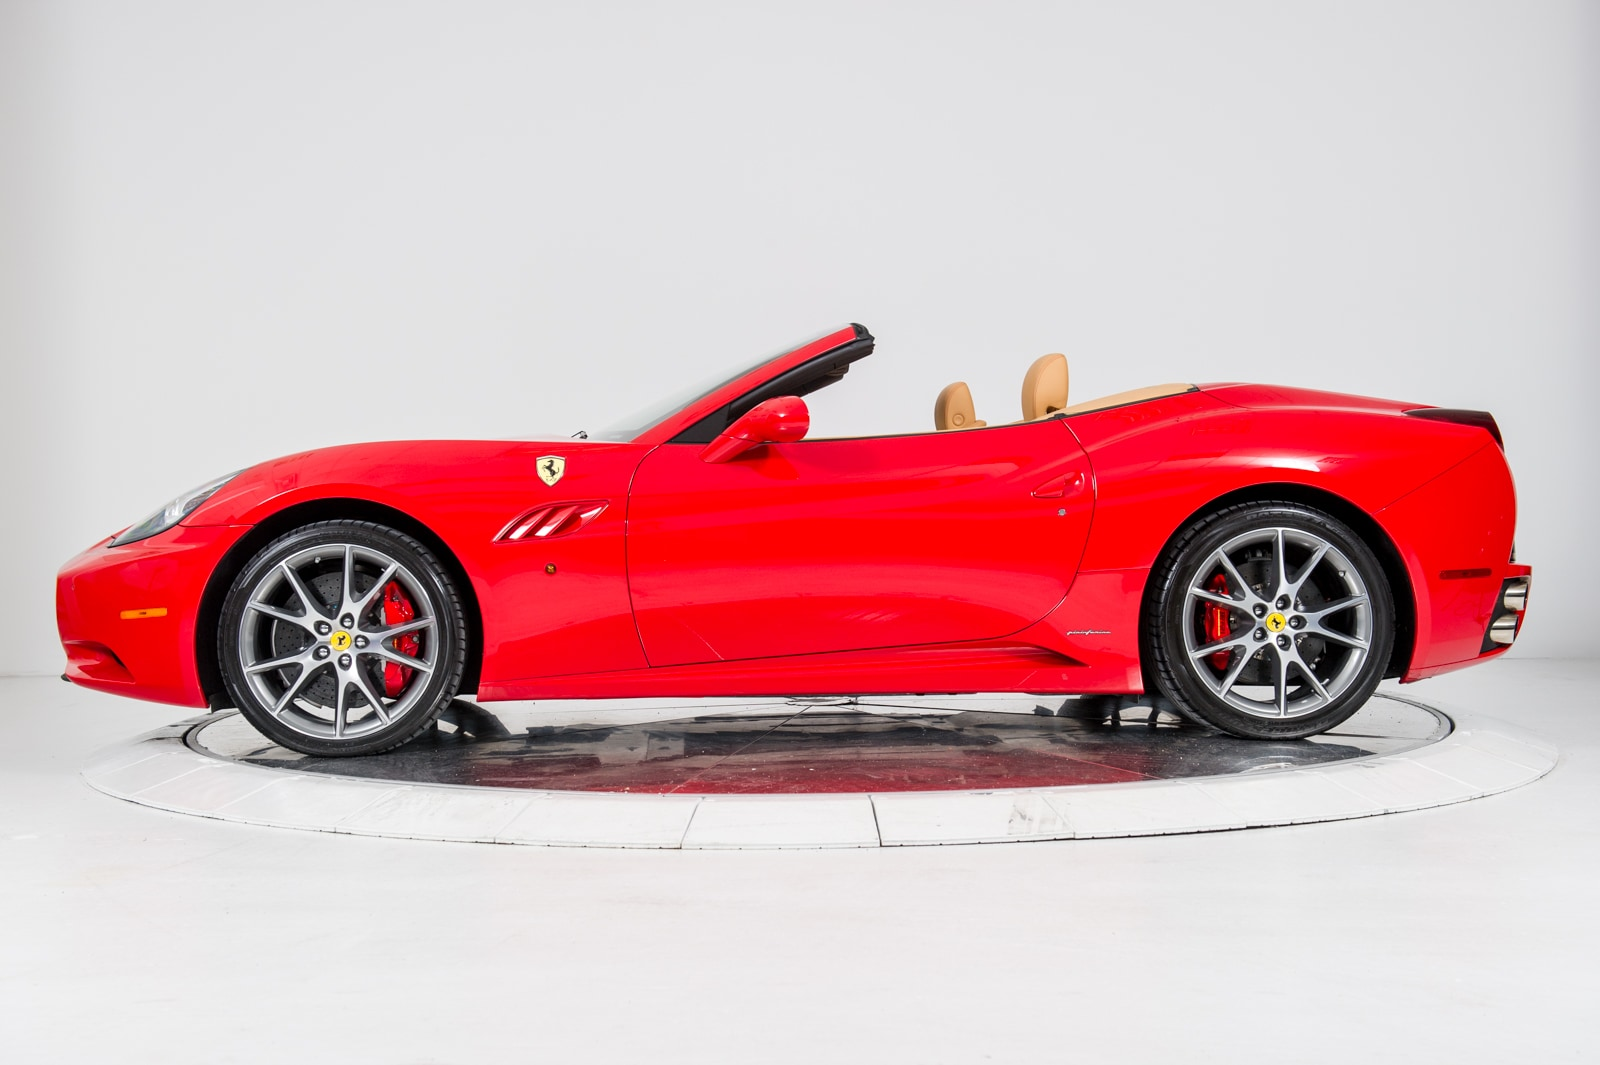 Used 2012 FERRARI CALIFORNIA in Red For Sale in NYC | VIN ...